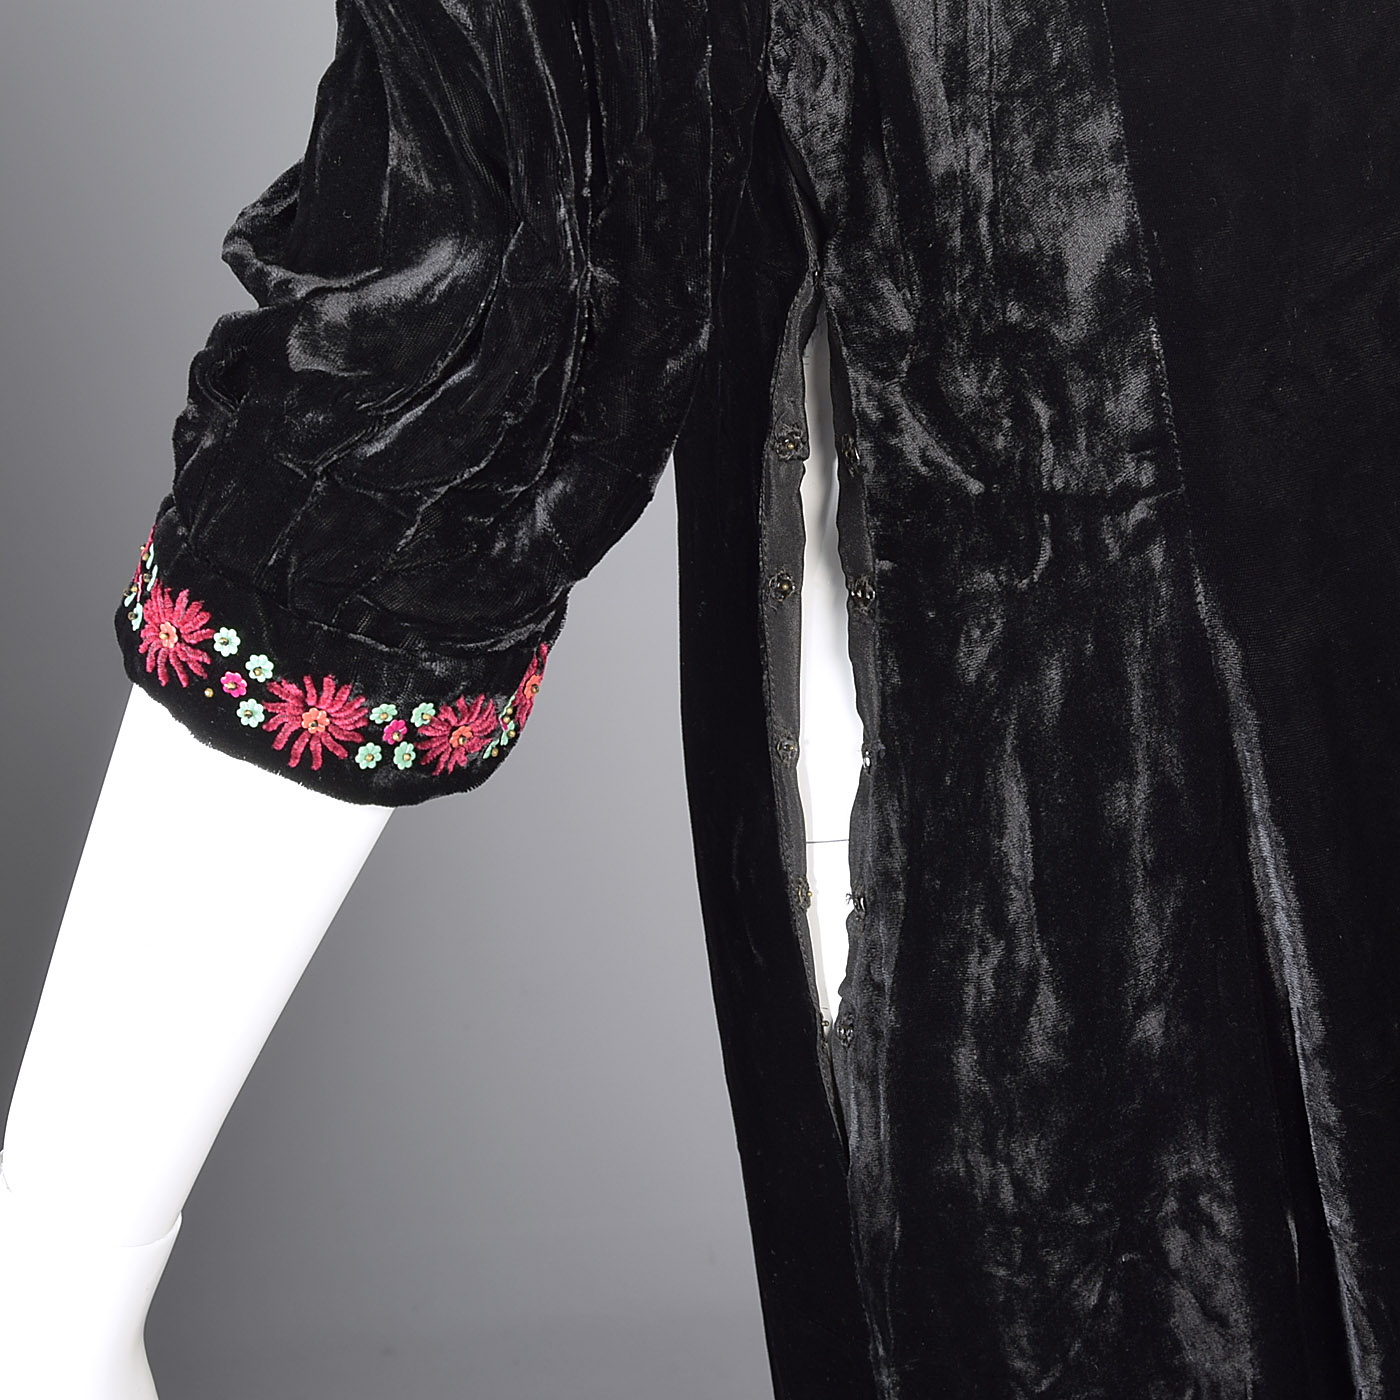 ba59f624726 M 1930s Black Velvet Dress Floral Beading Embroidery Evening Cocktail Art  Deco